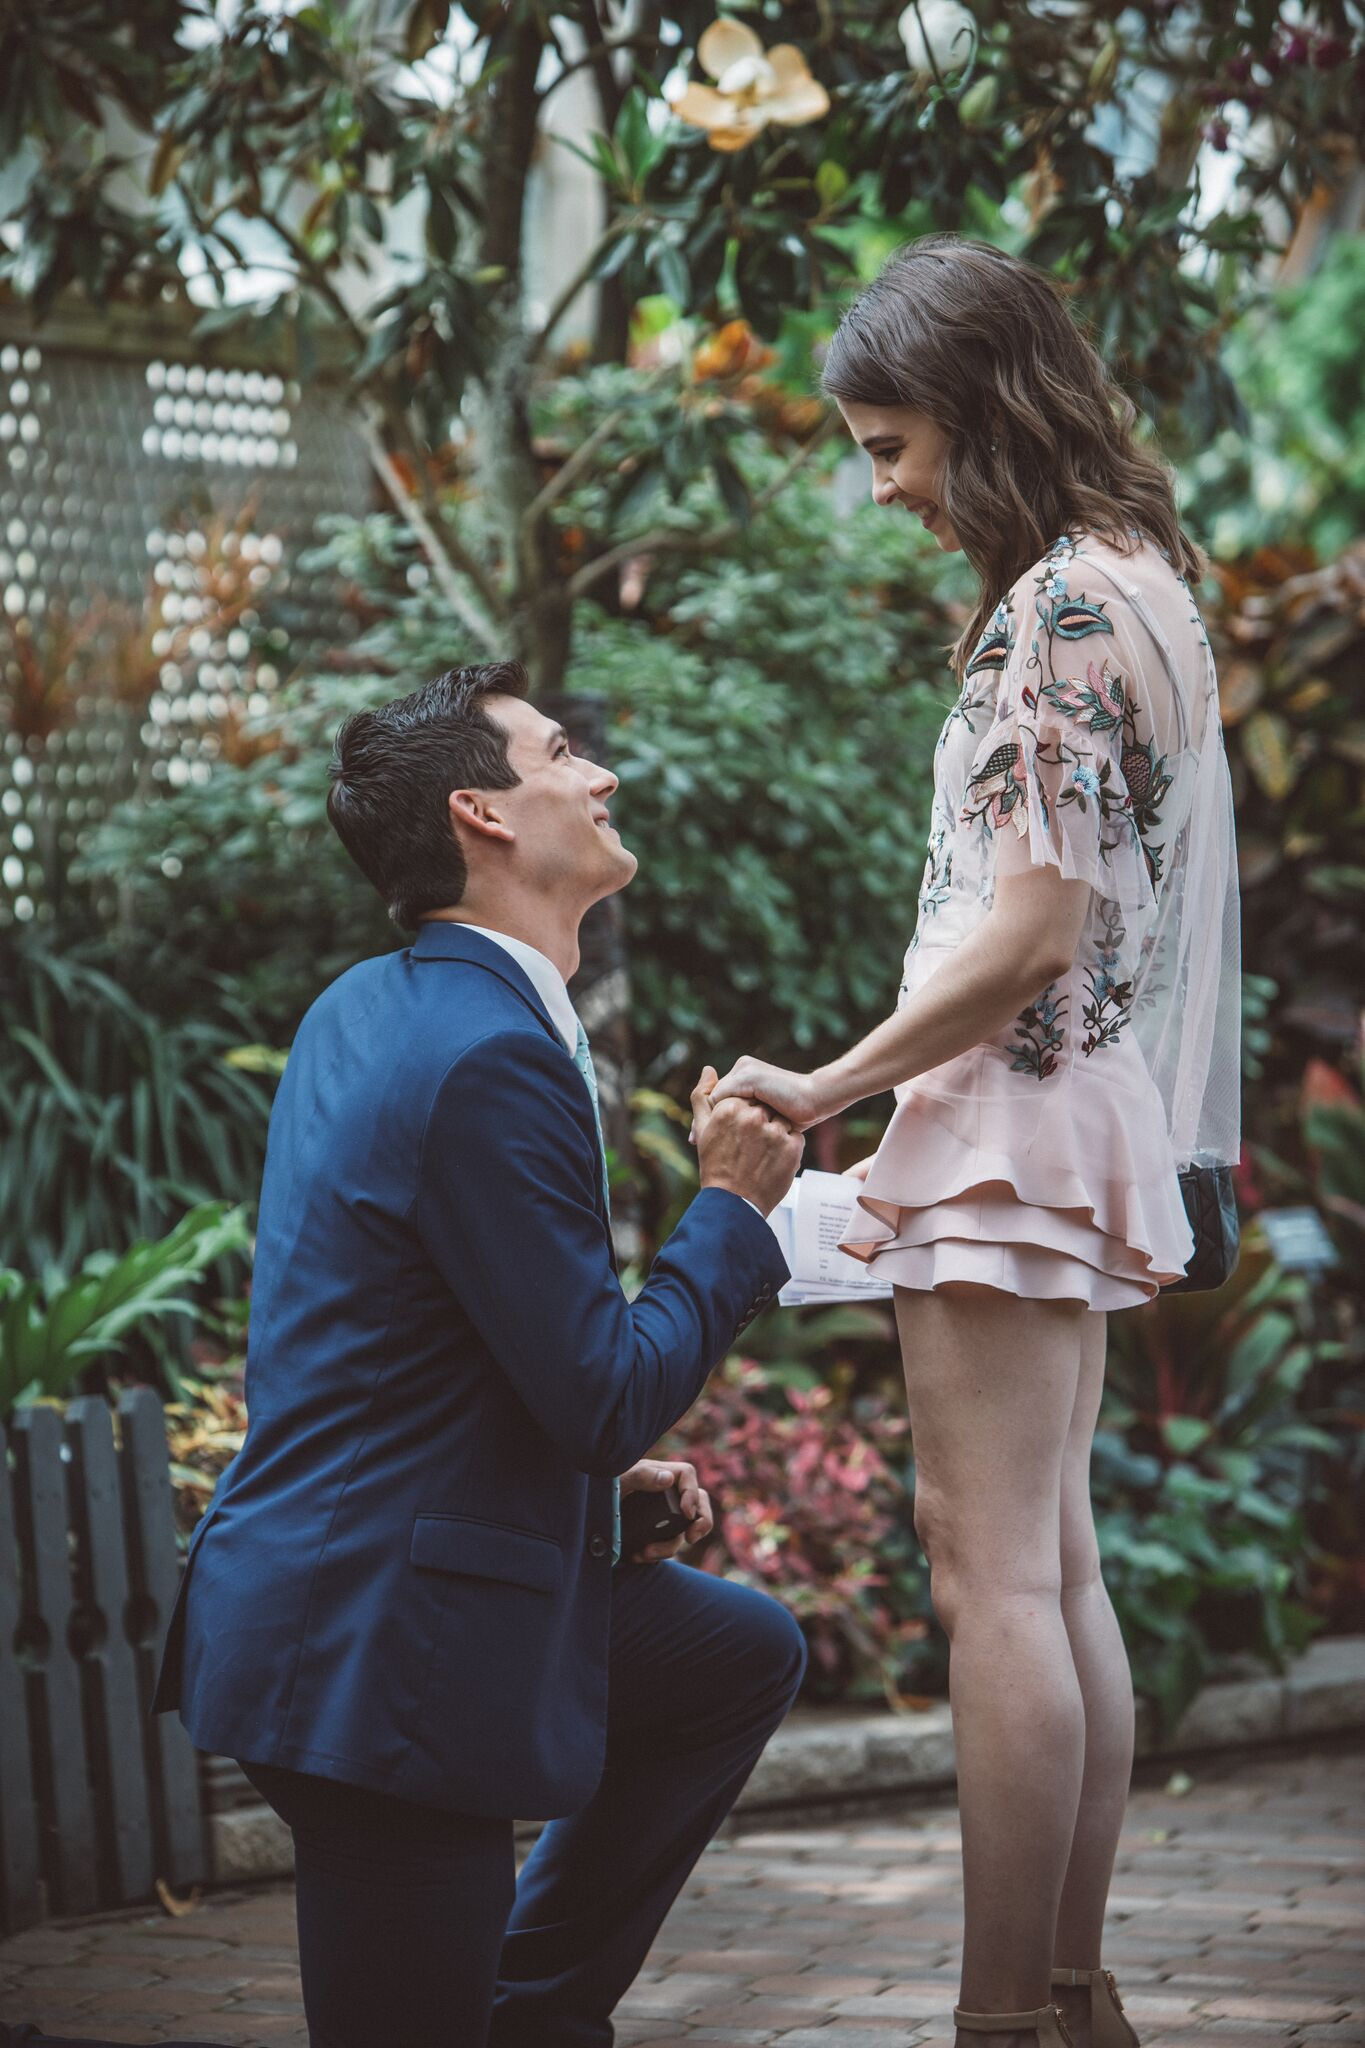 Amanda's Proposal in The Lincoln Park Conservatory